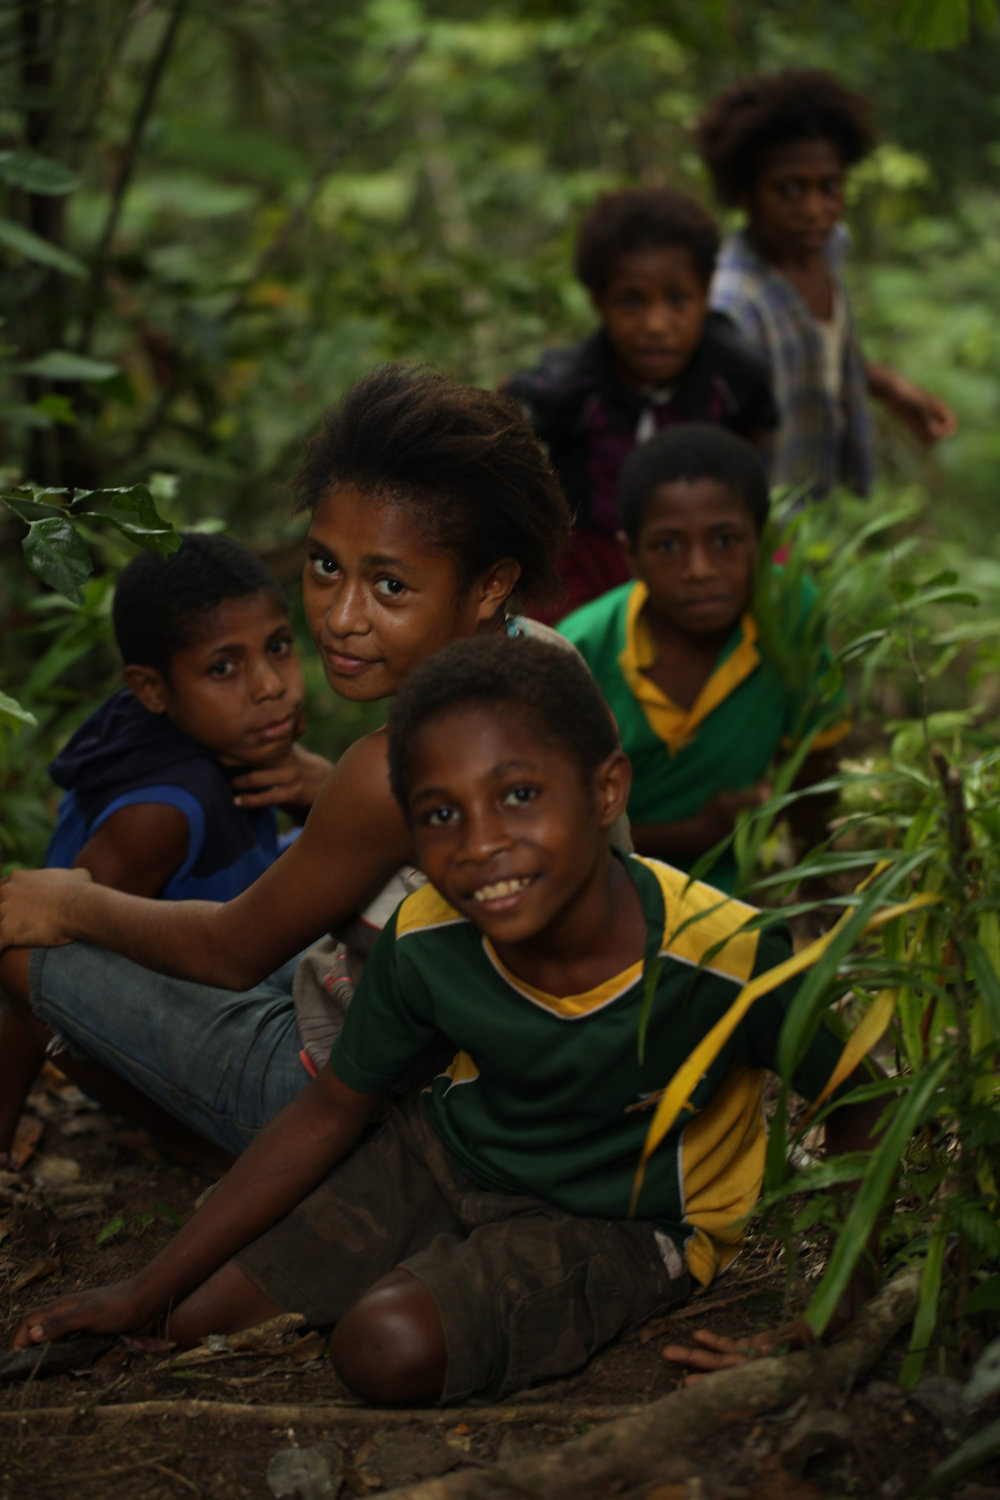 Ohu village children run ahead, arranging themselves in various tableaux in the forest, to surprise the hiking party from Binatang Research Centre, Ohu Conservation Area, near Madang, Papua New Guinea.  Published in  Cosmos Magazine December-January issue